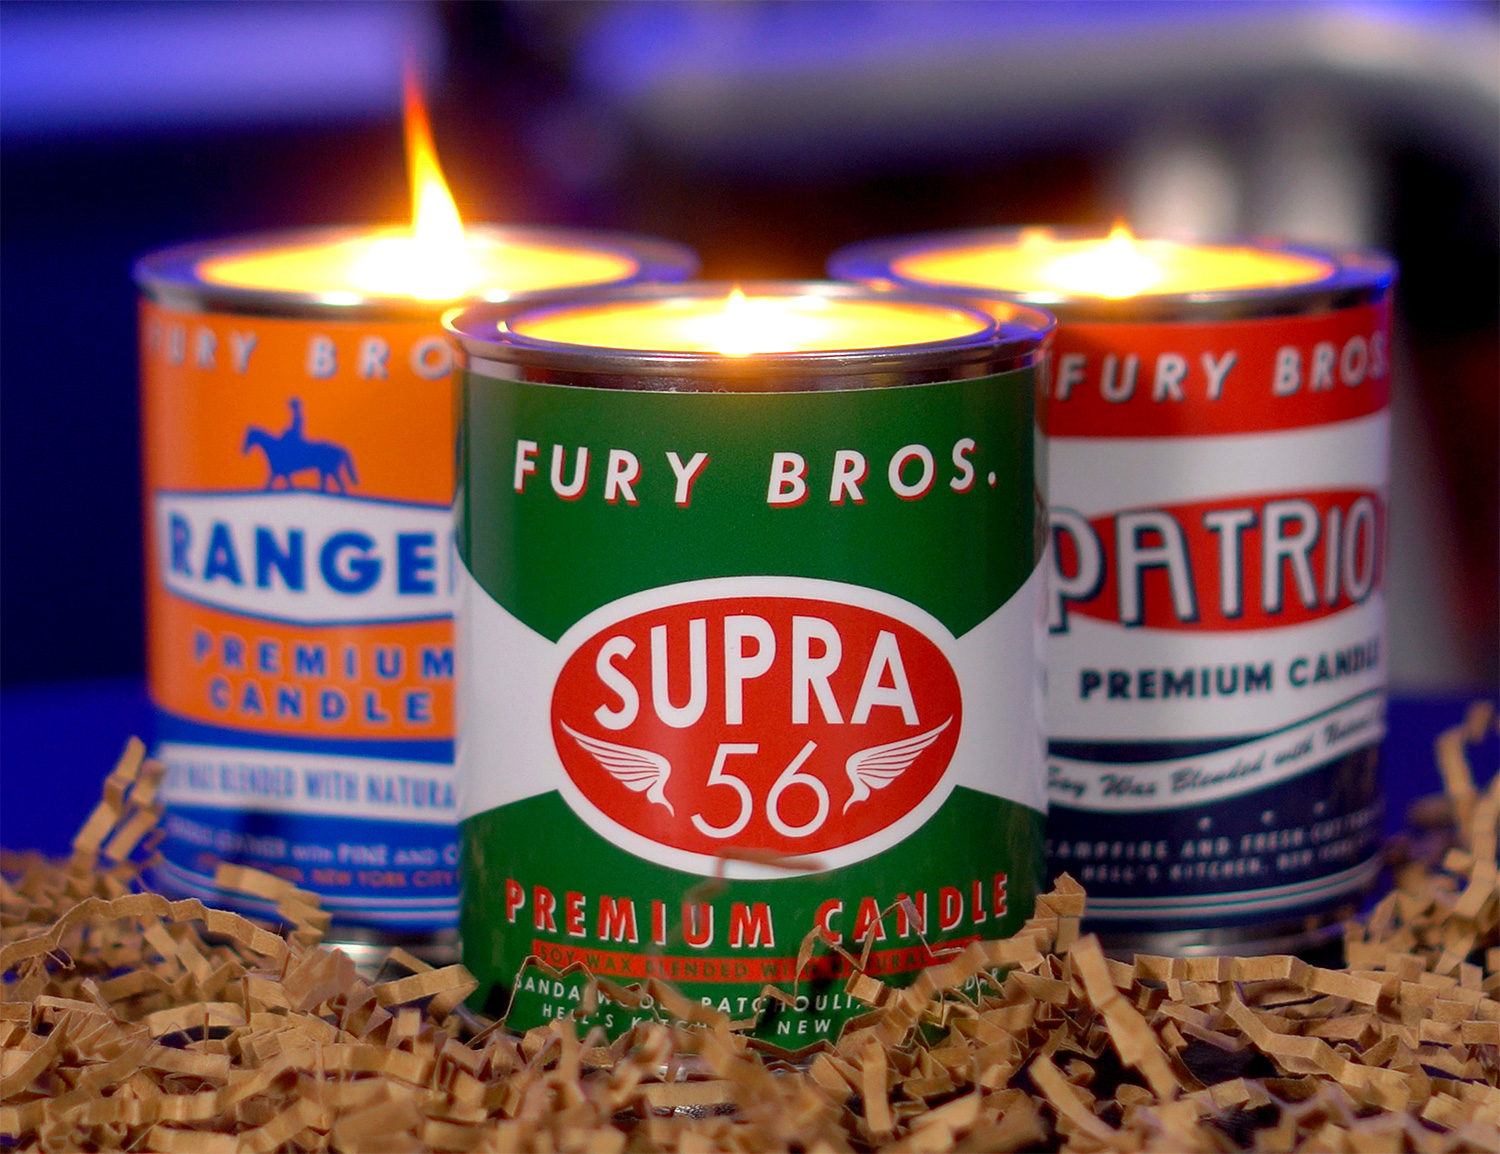 Fury Bros. Natural Scented Candles Smell Like Grandpa's Garage at werd.com